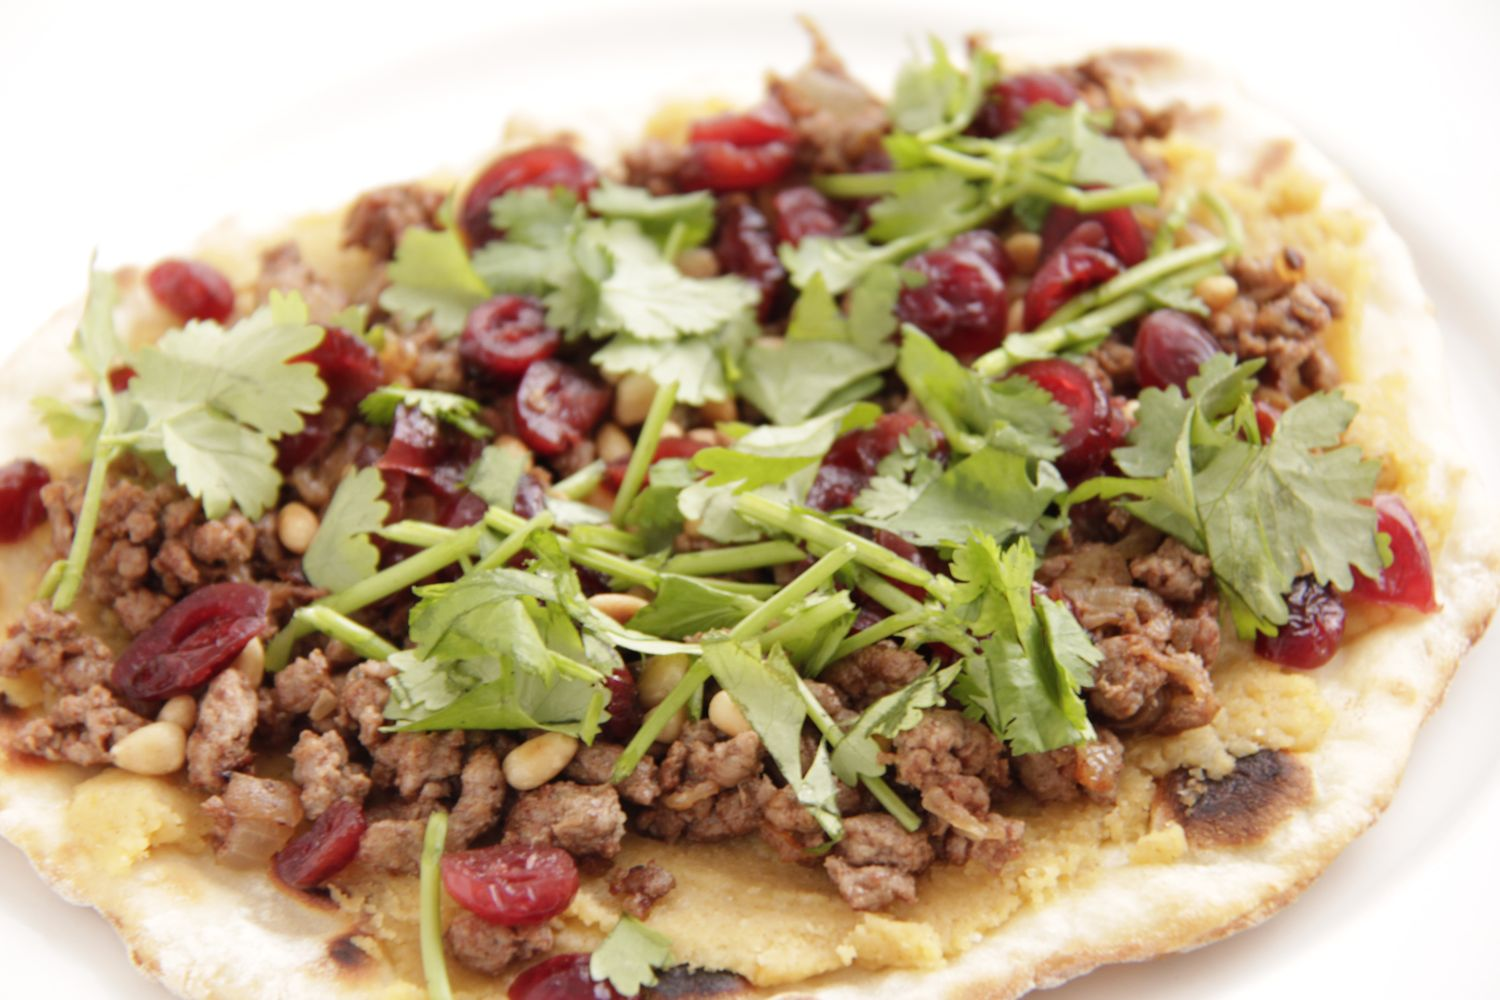 Middle eastern pizza with lamb and cranberries recipe for 1 - 3